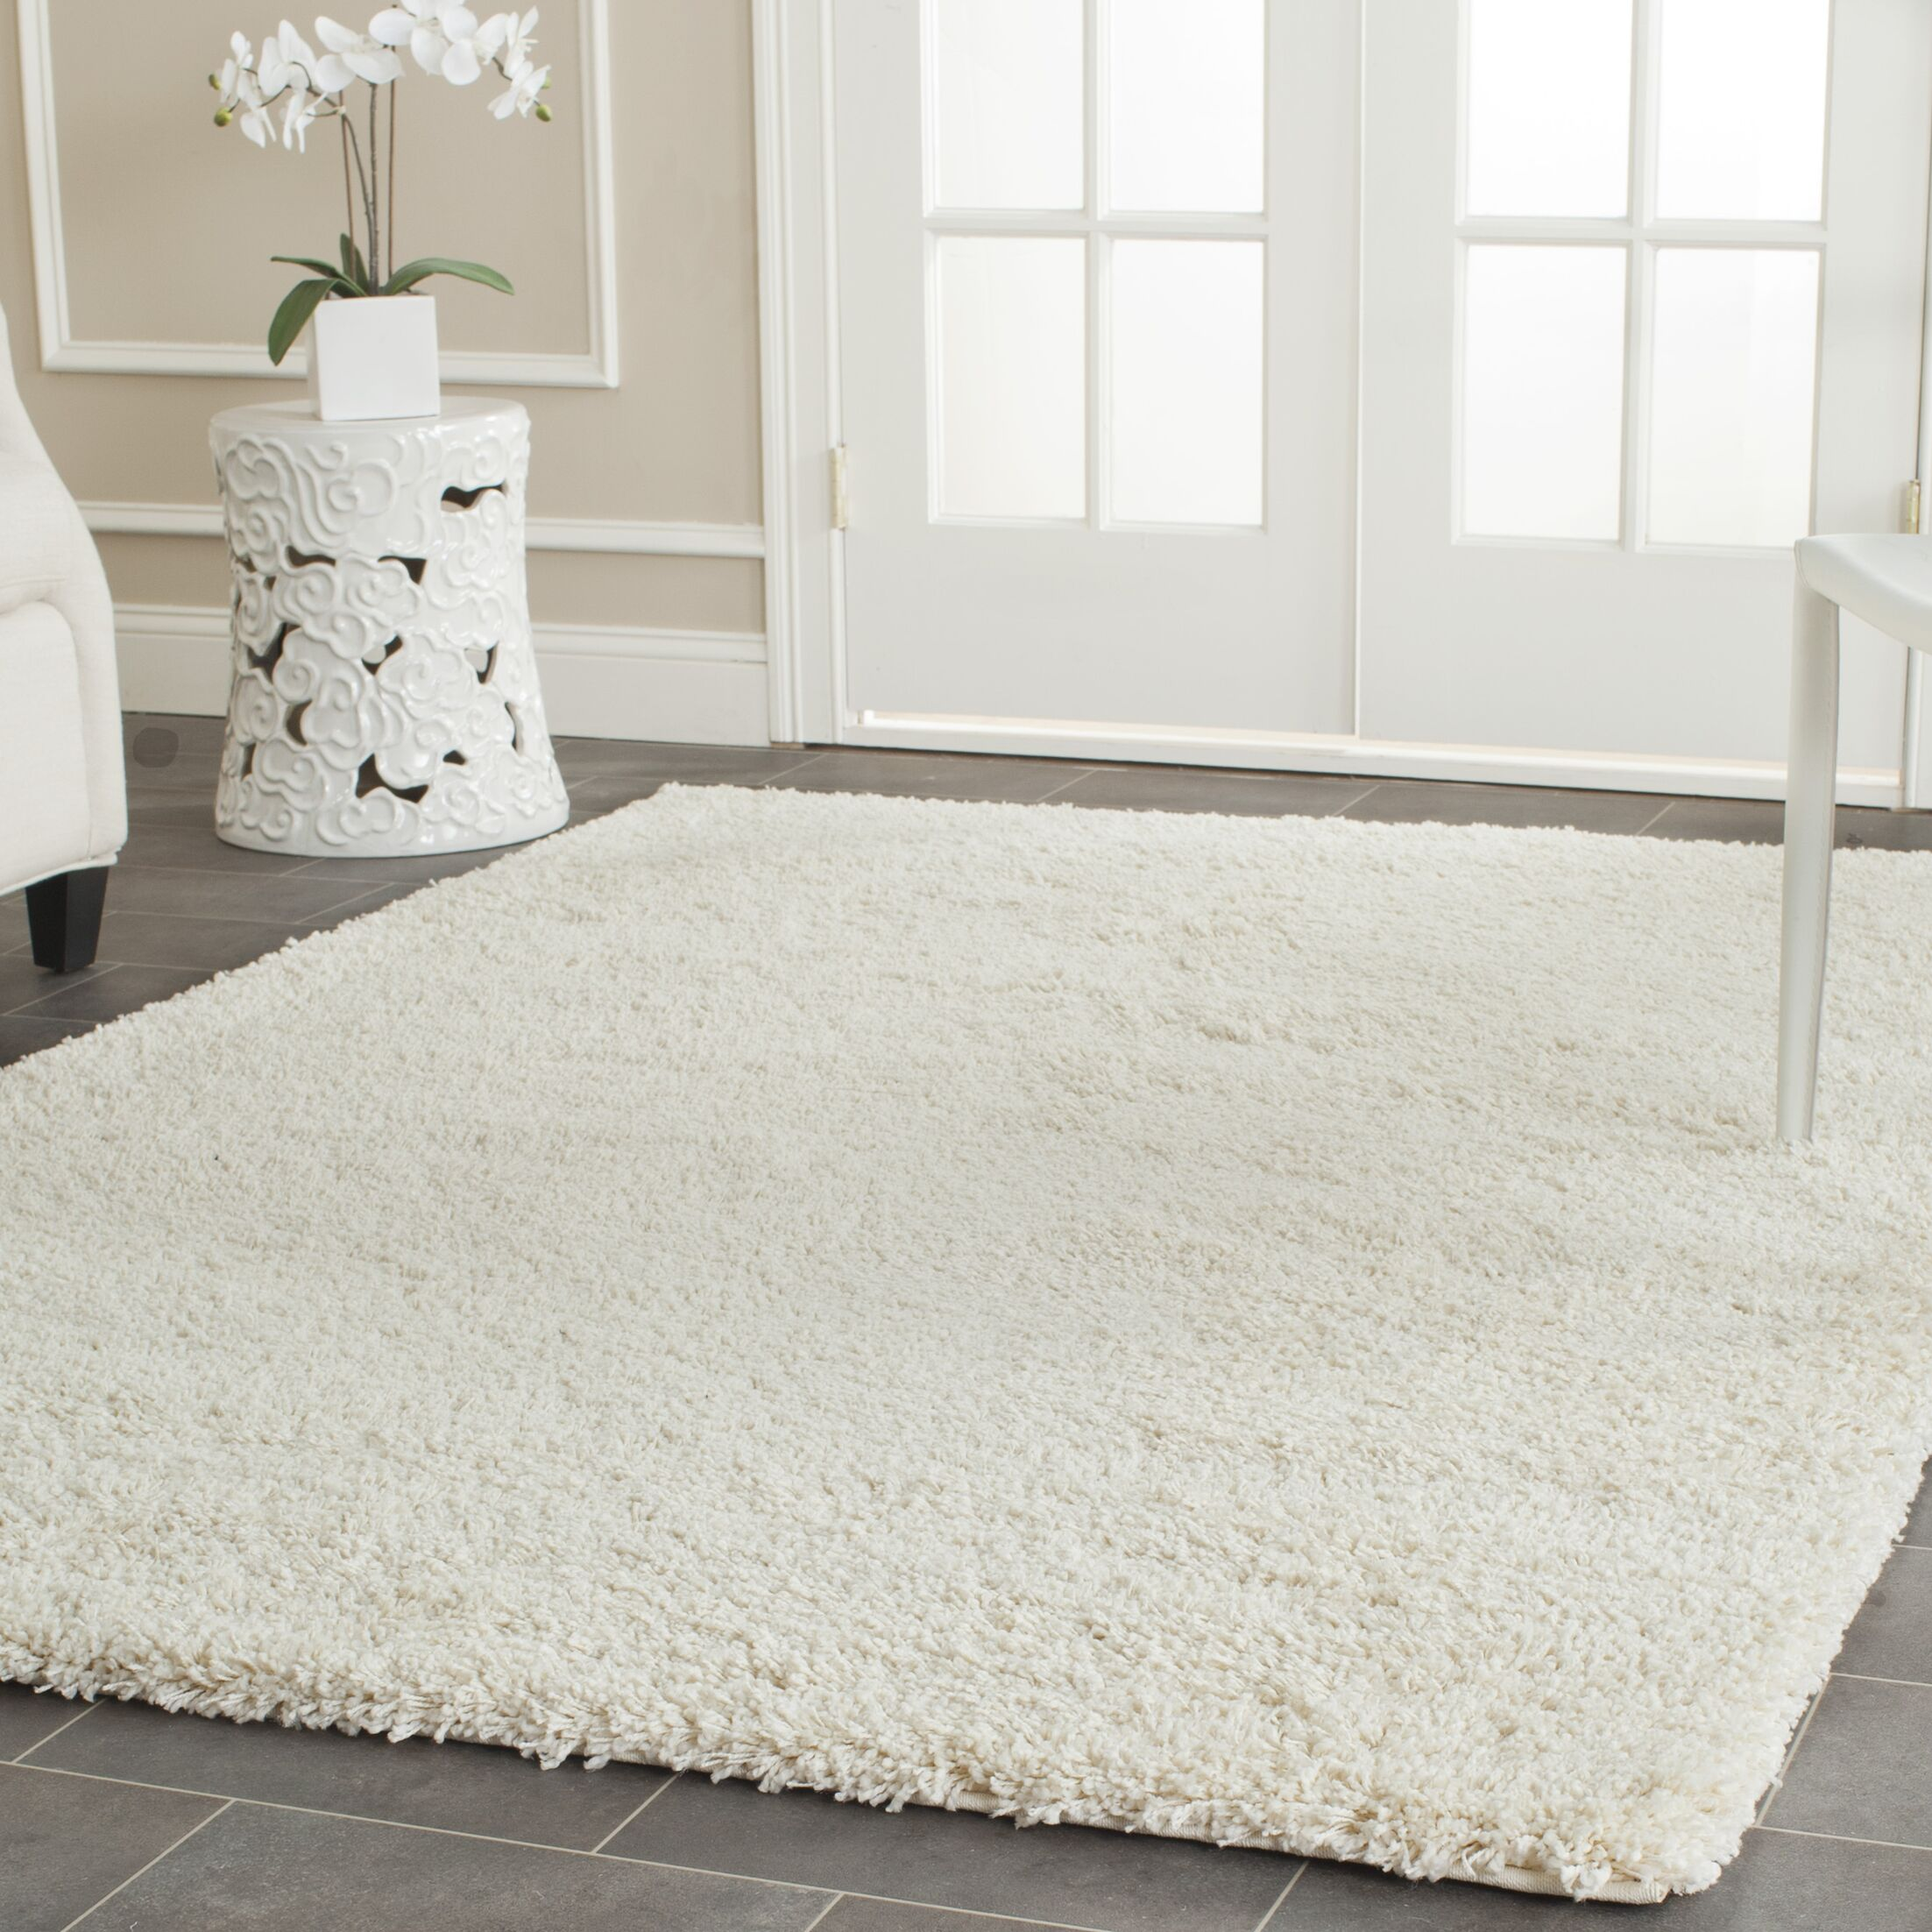 Mckeehan Shag and Flokati Ivory Area Rug Rug Size: Runner 2'3